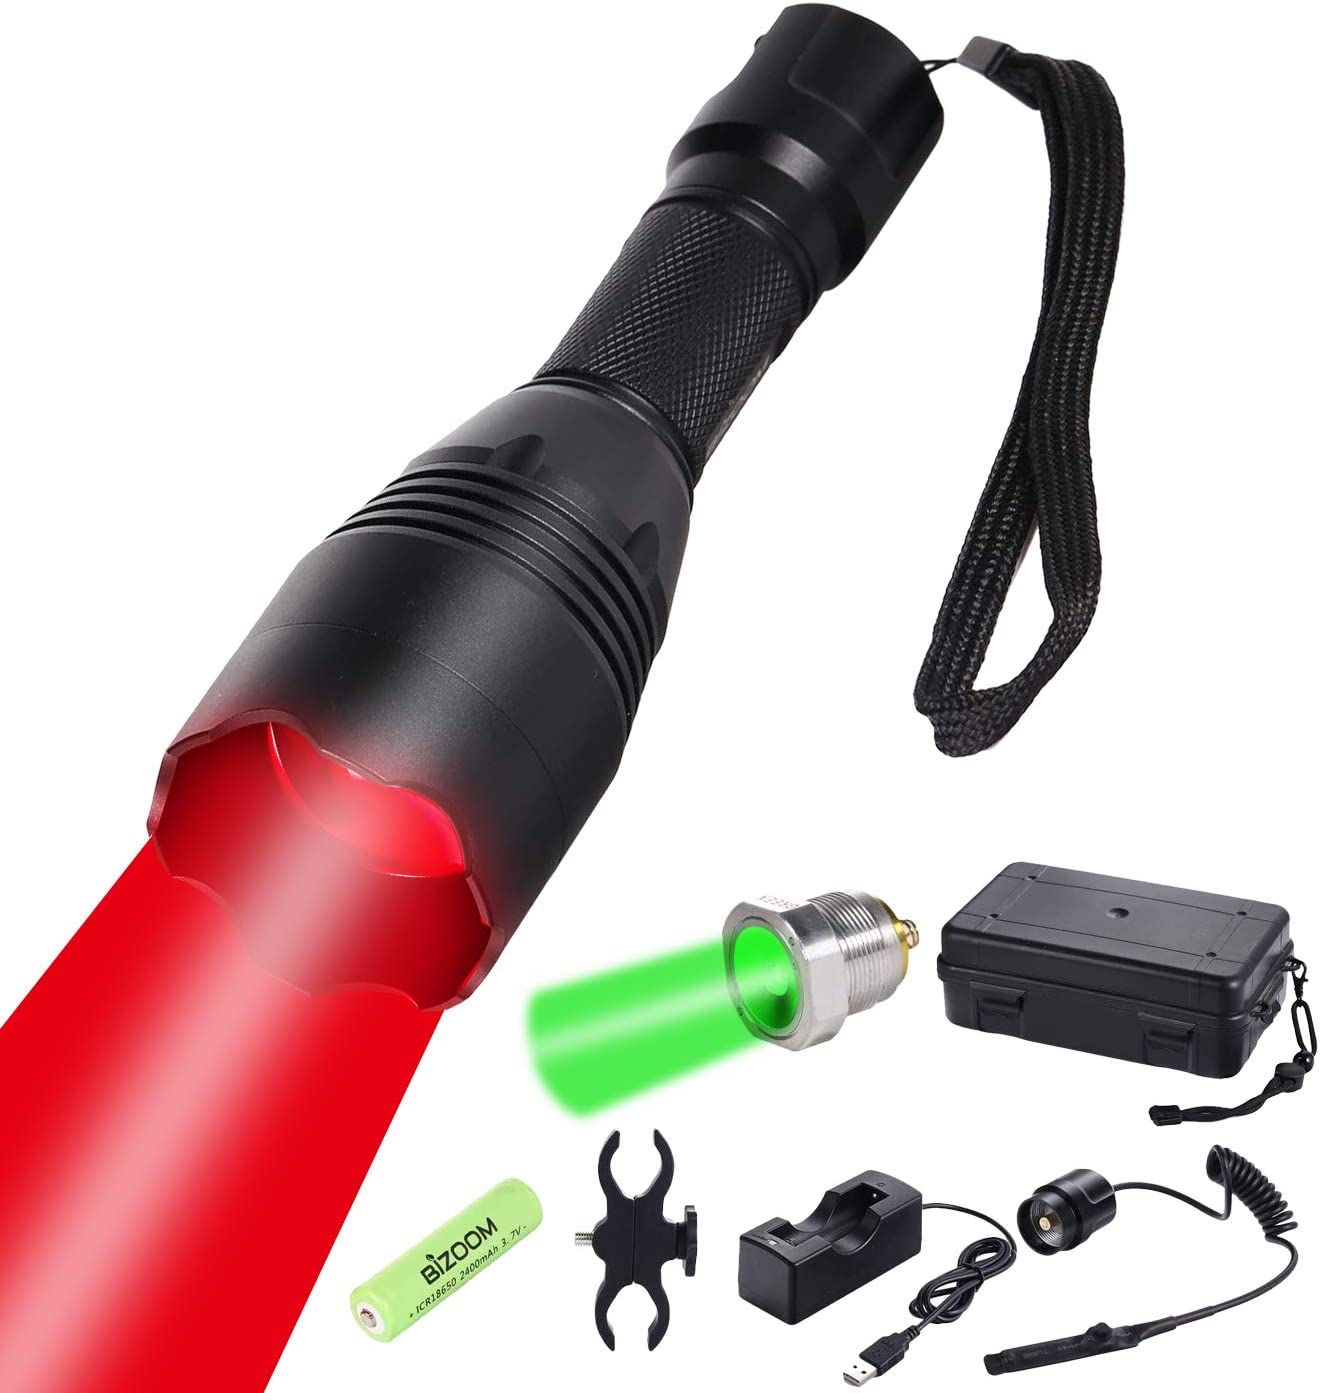 BIZOOM Hunting Flashlight Kit Zoomable Focus KL35 Long Range Red Green Cree LED Predator Varmint Night Light Torch with Remote Pressure Switch,Rifle Scope Mount,Rechargeable 18650 Battery and Charger